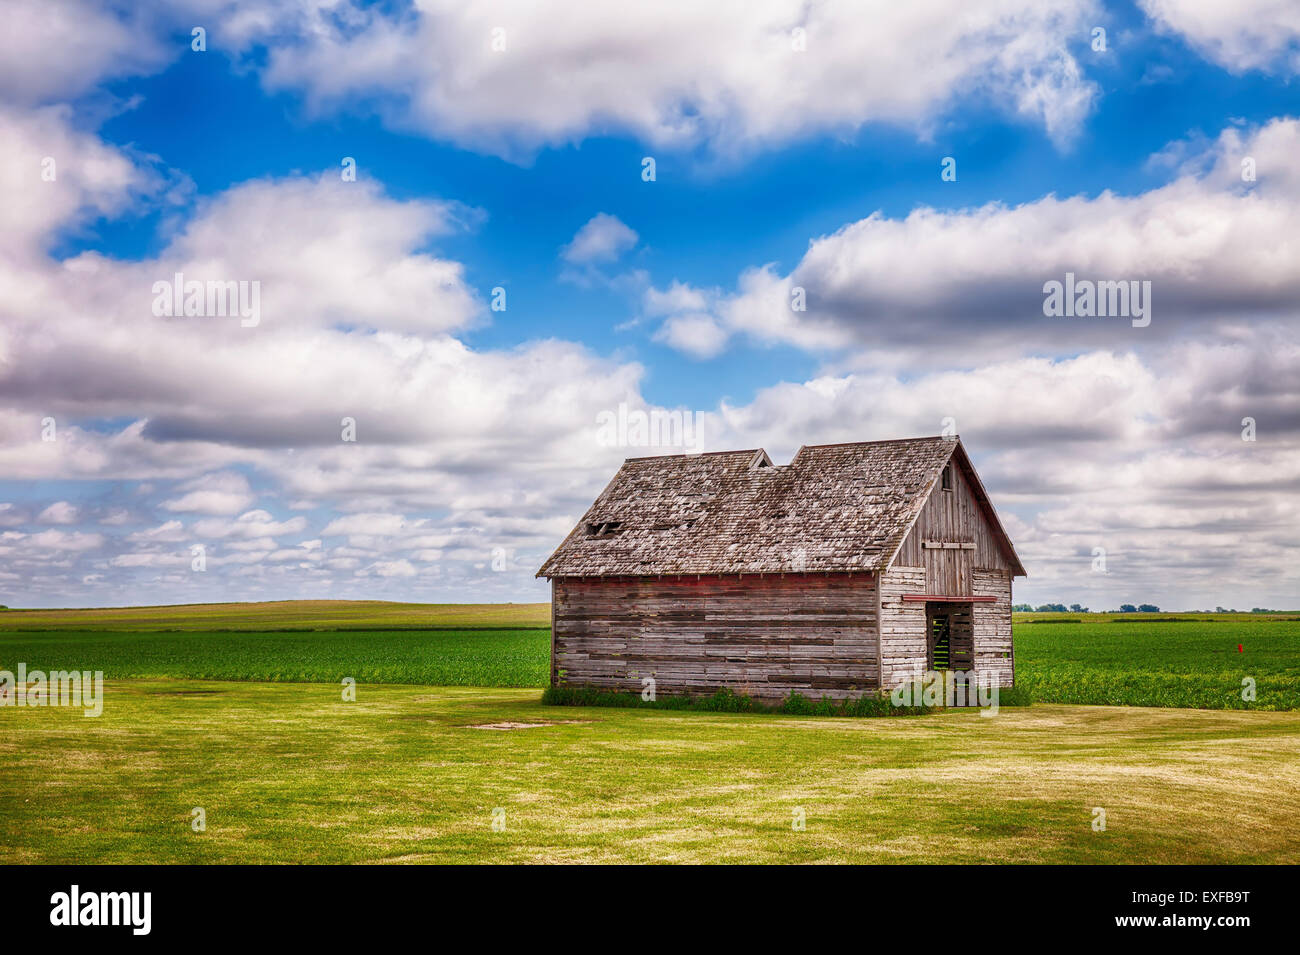 Old Shed In Iowa Field - Stock Image